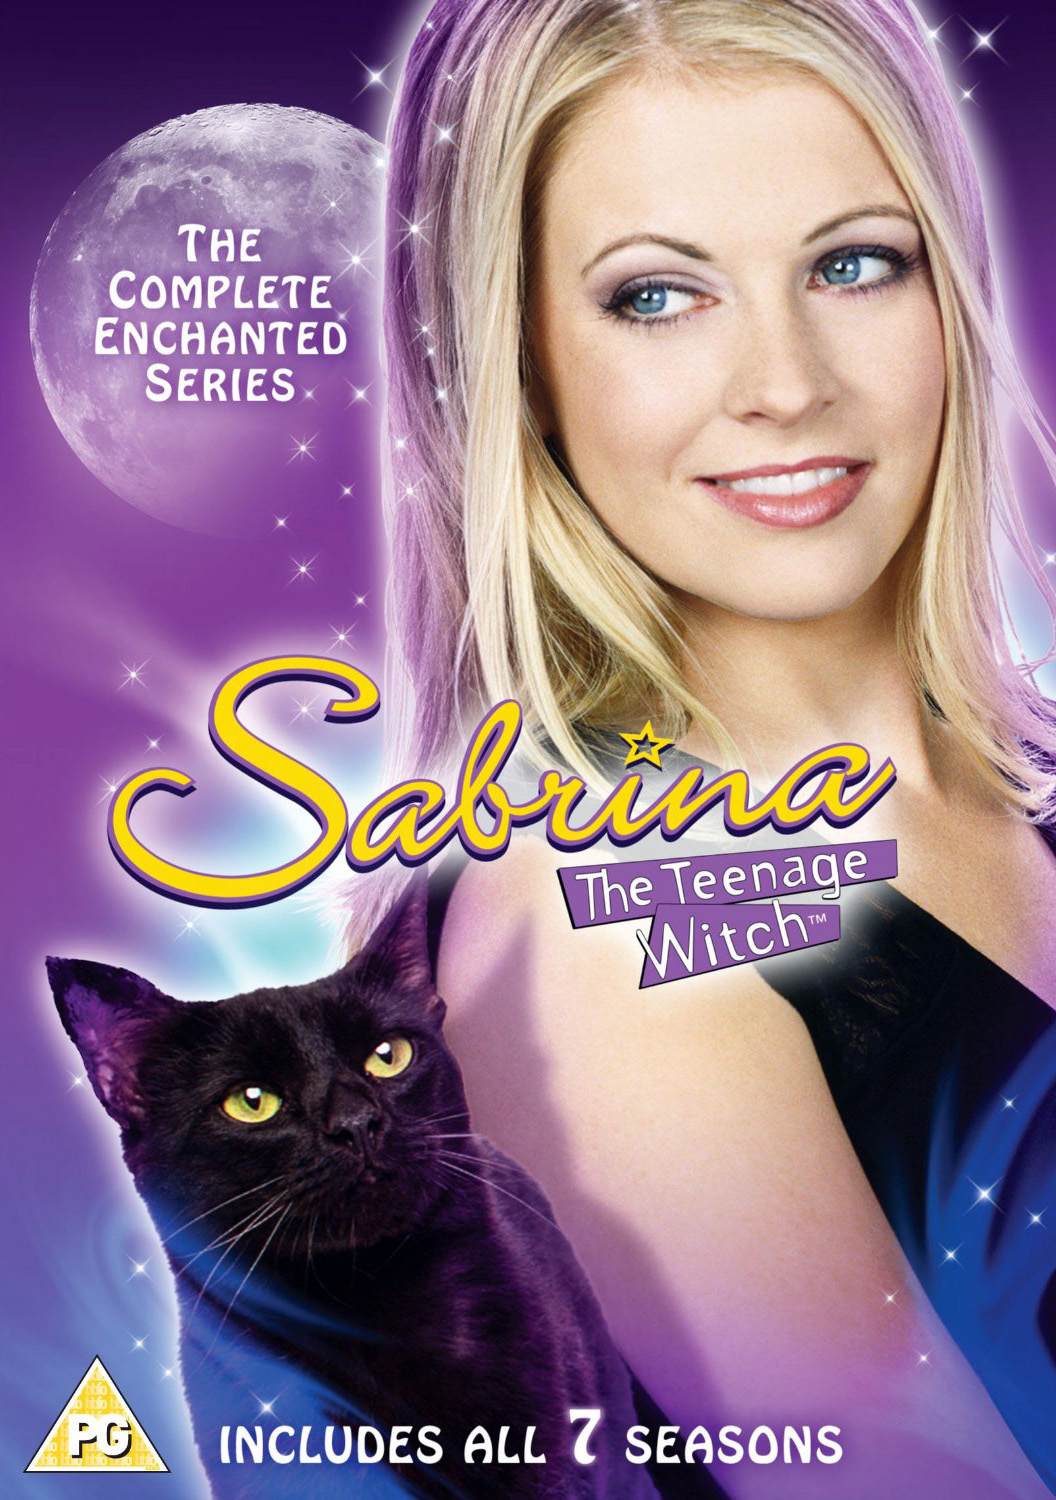 sabrina_teenage_witch_dvd_uk_complete_series_dvdbash.jpg